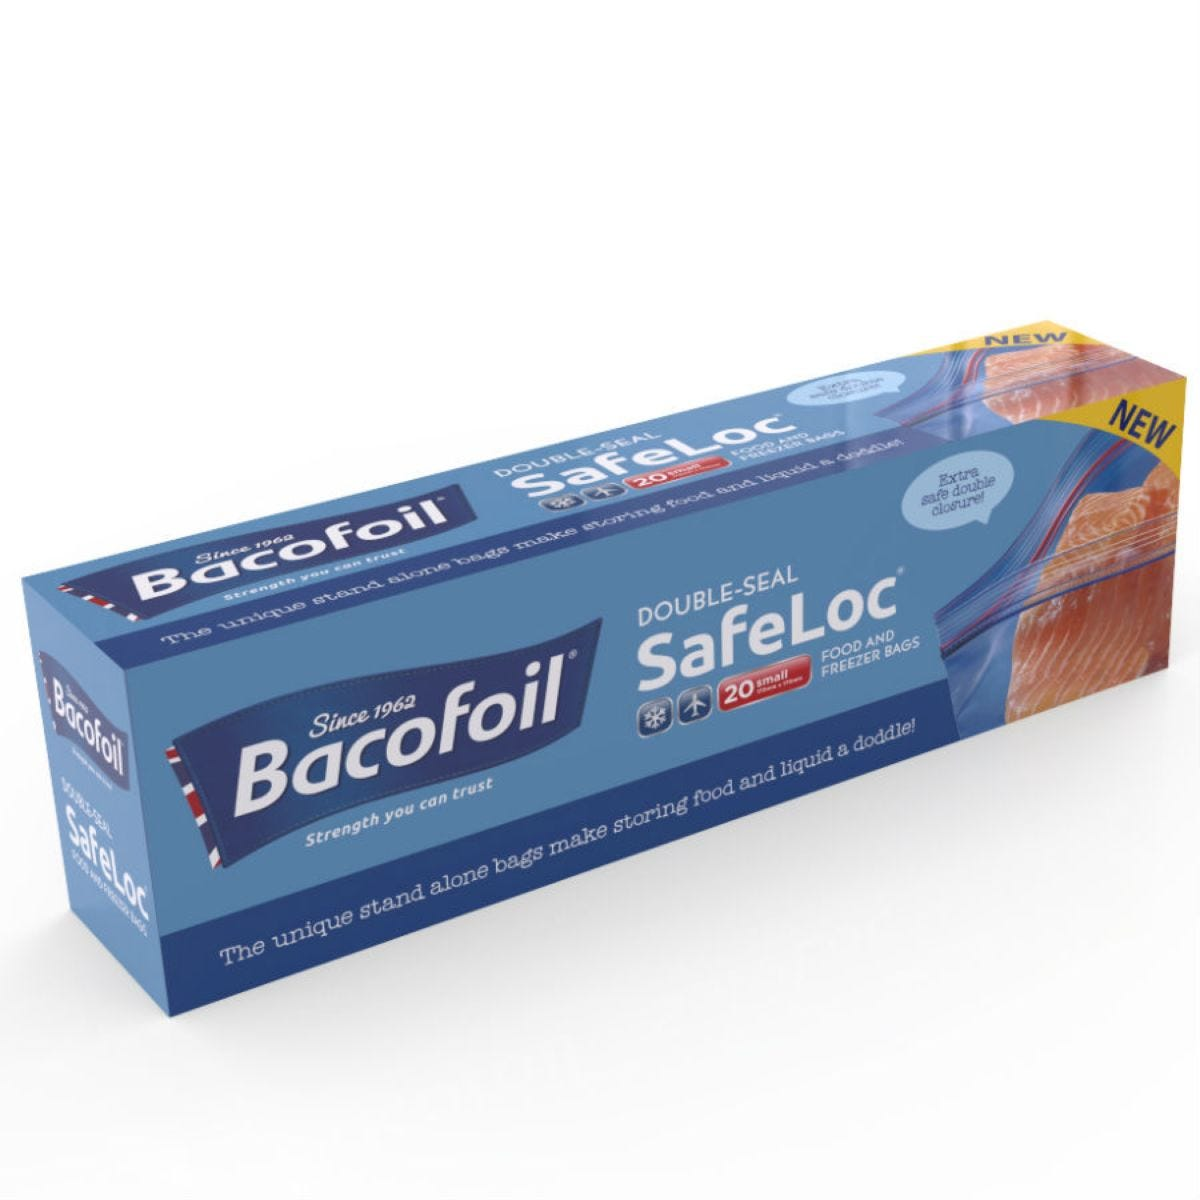 Bacofoil Small SafeLoc Storage Bags – 20 Pack